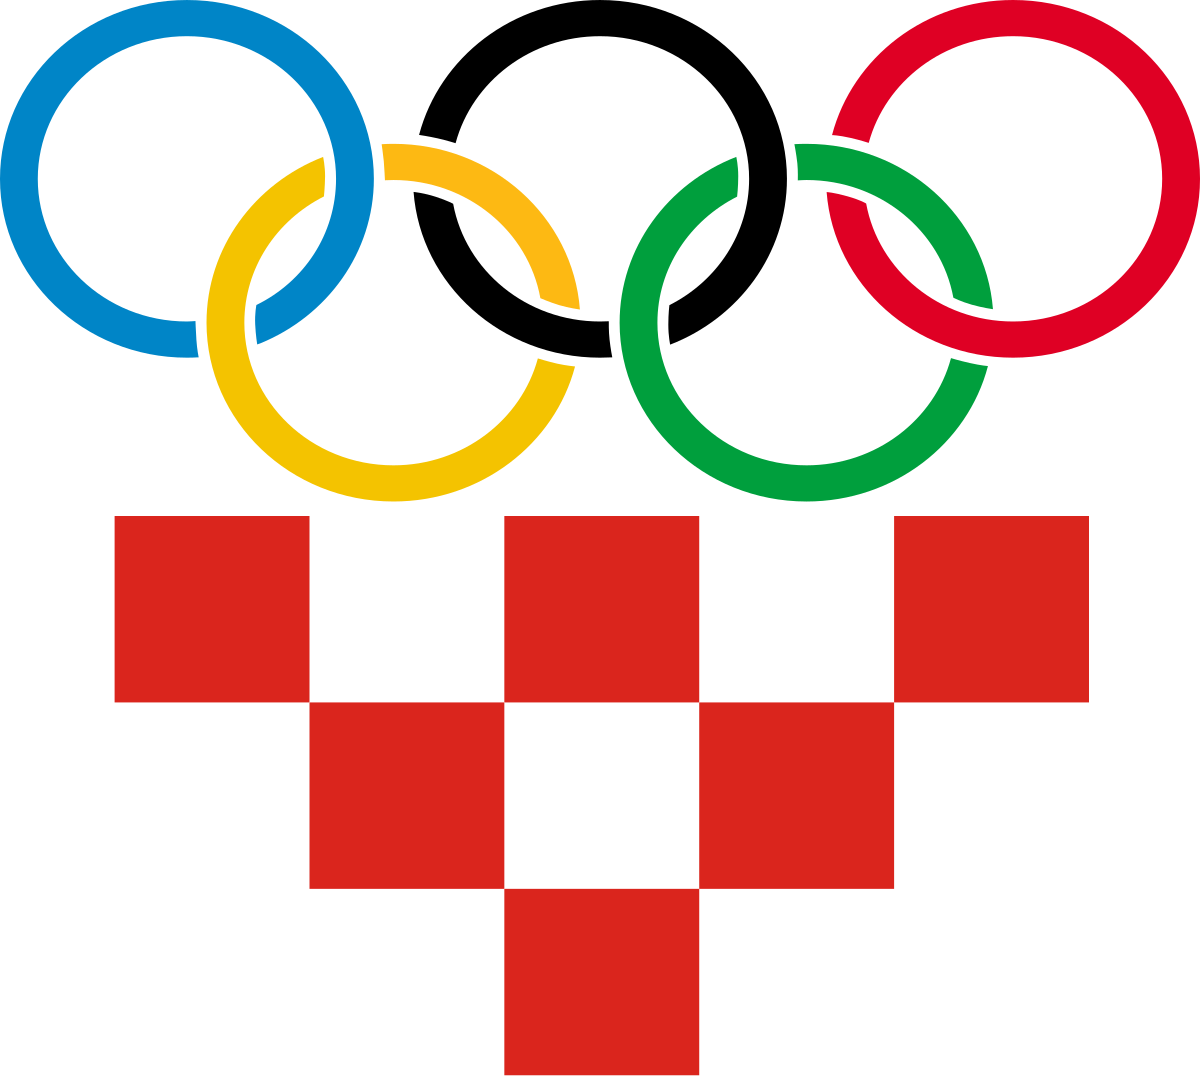 Croatian committee wikipedia . Olympic clipart olympic shooting